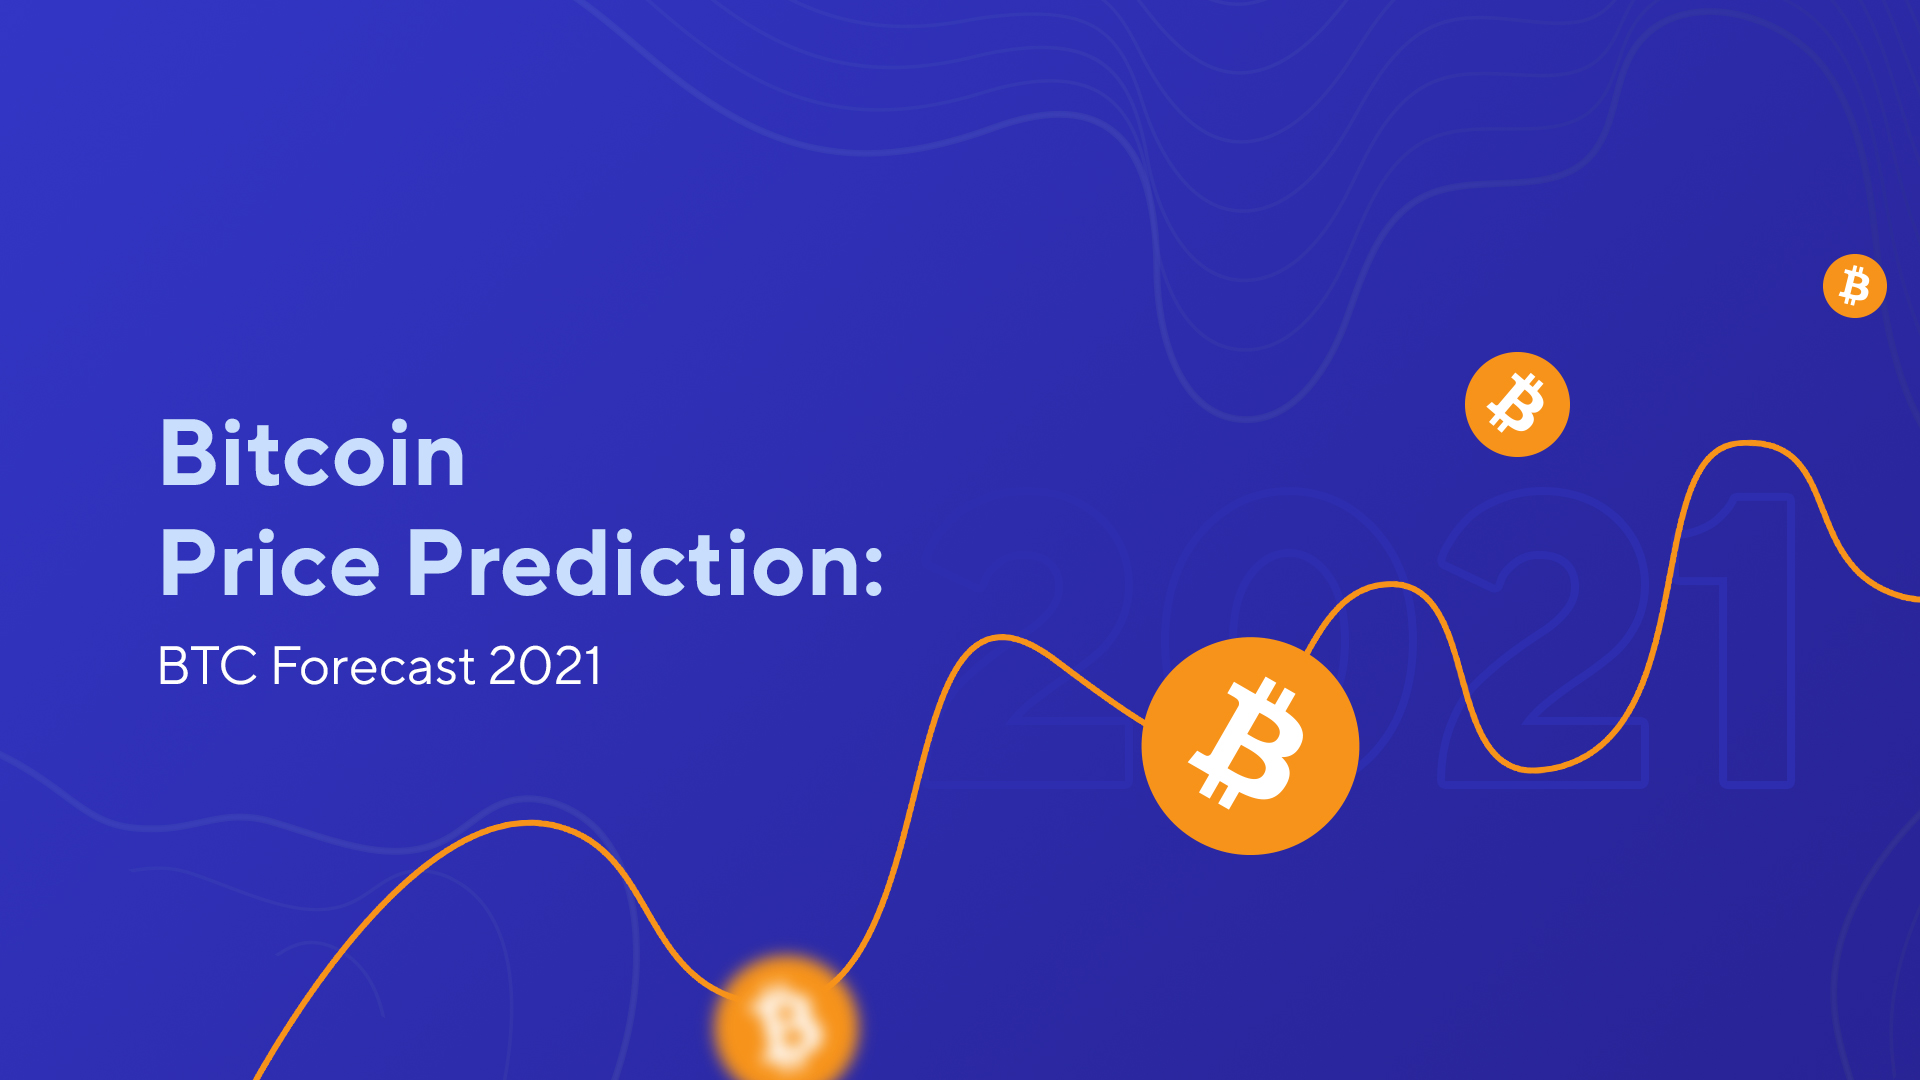 Bitcoin Price Prediction: BTC Forecast 2021